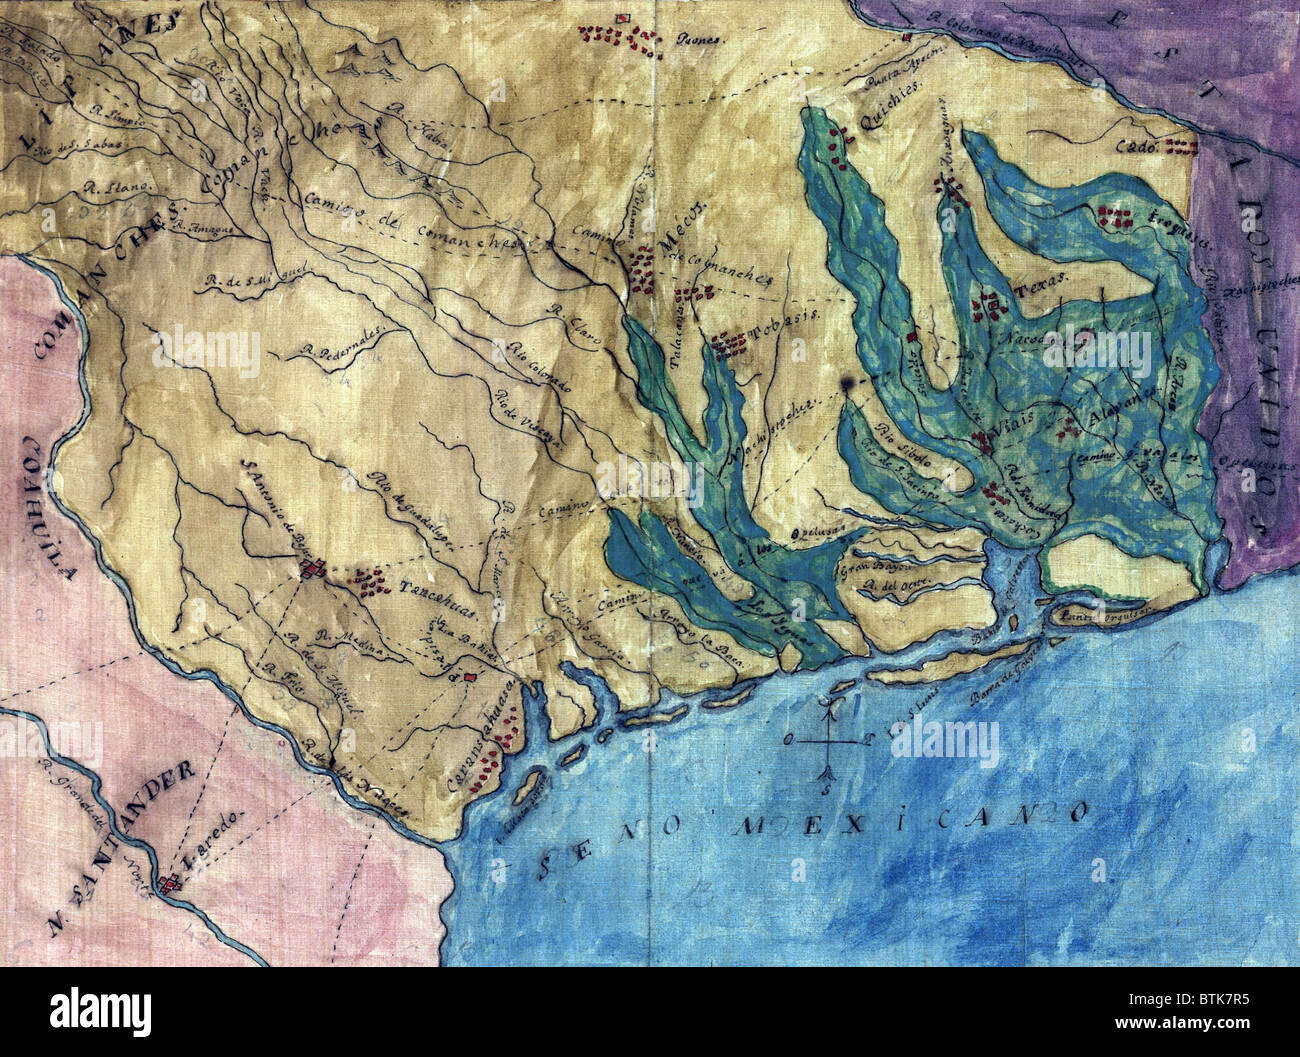 Gulf Of Mexico Map Stock Photos & Gulf Of Mexico Map Stock ...